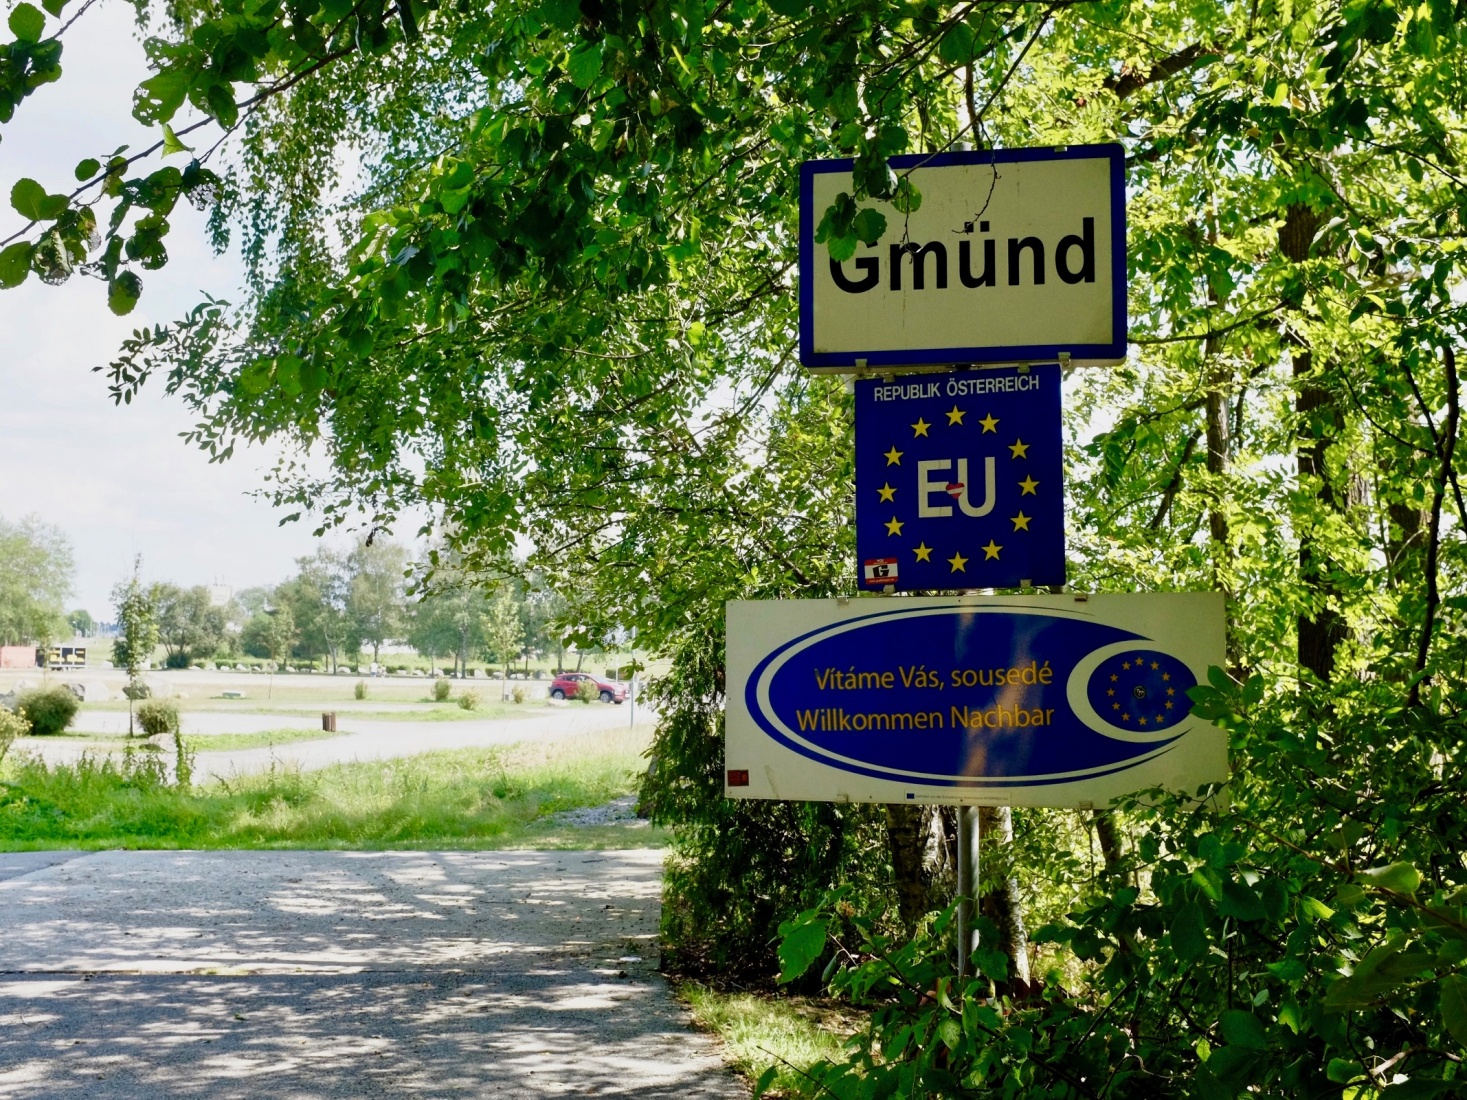 Street sign marking the entrance to Gmünd, Austria.